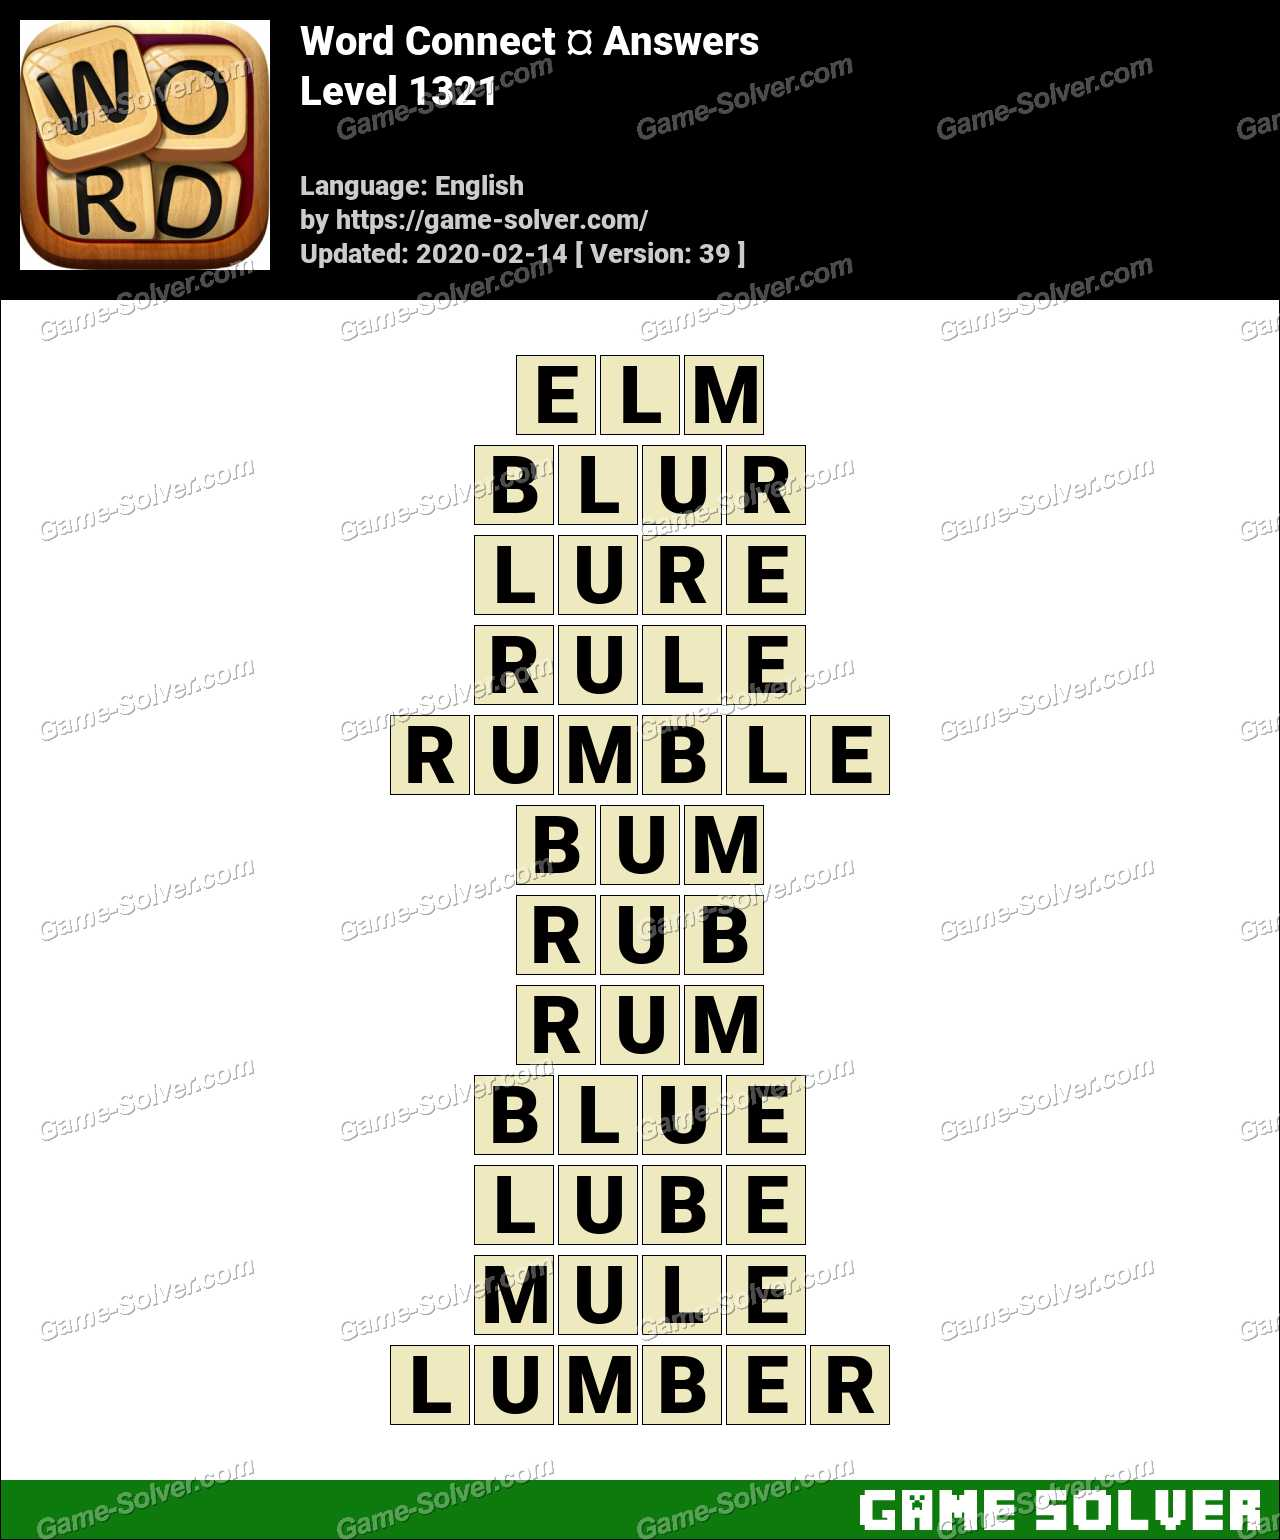 Word Connect Level 1321 Answers